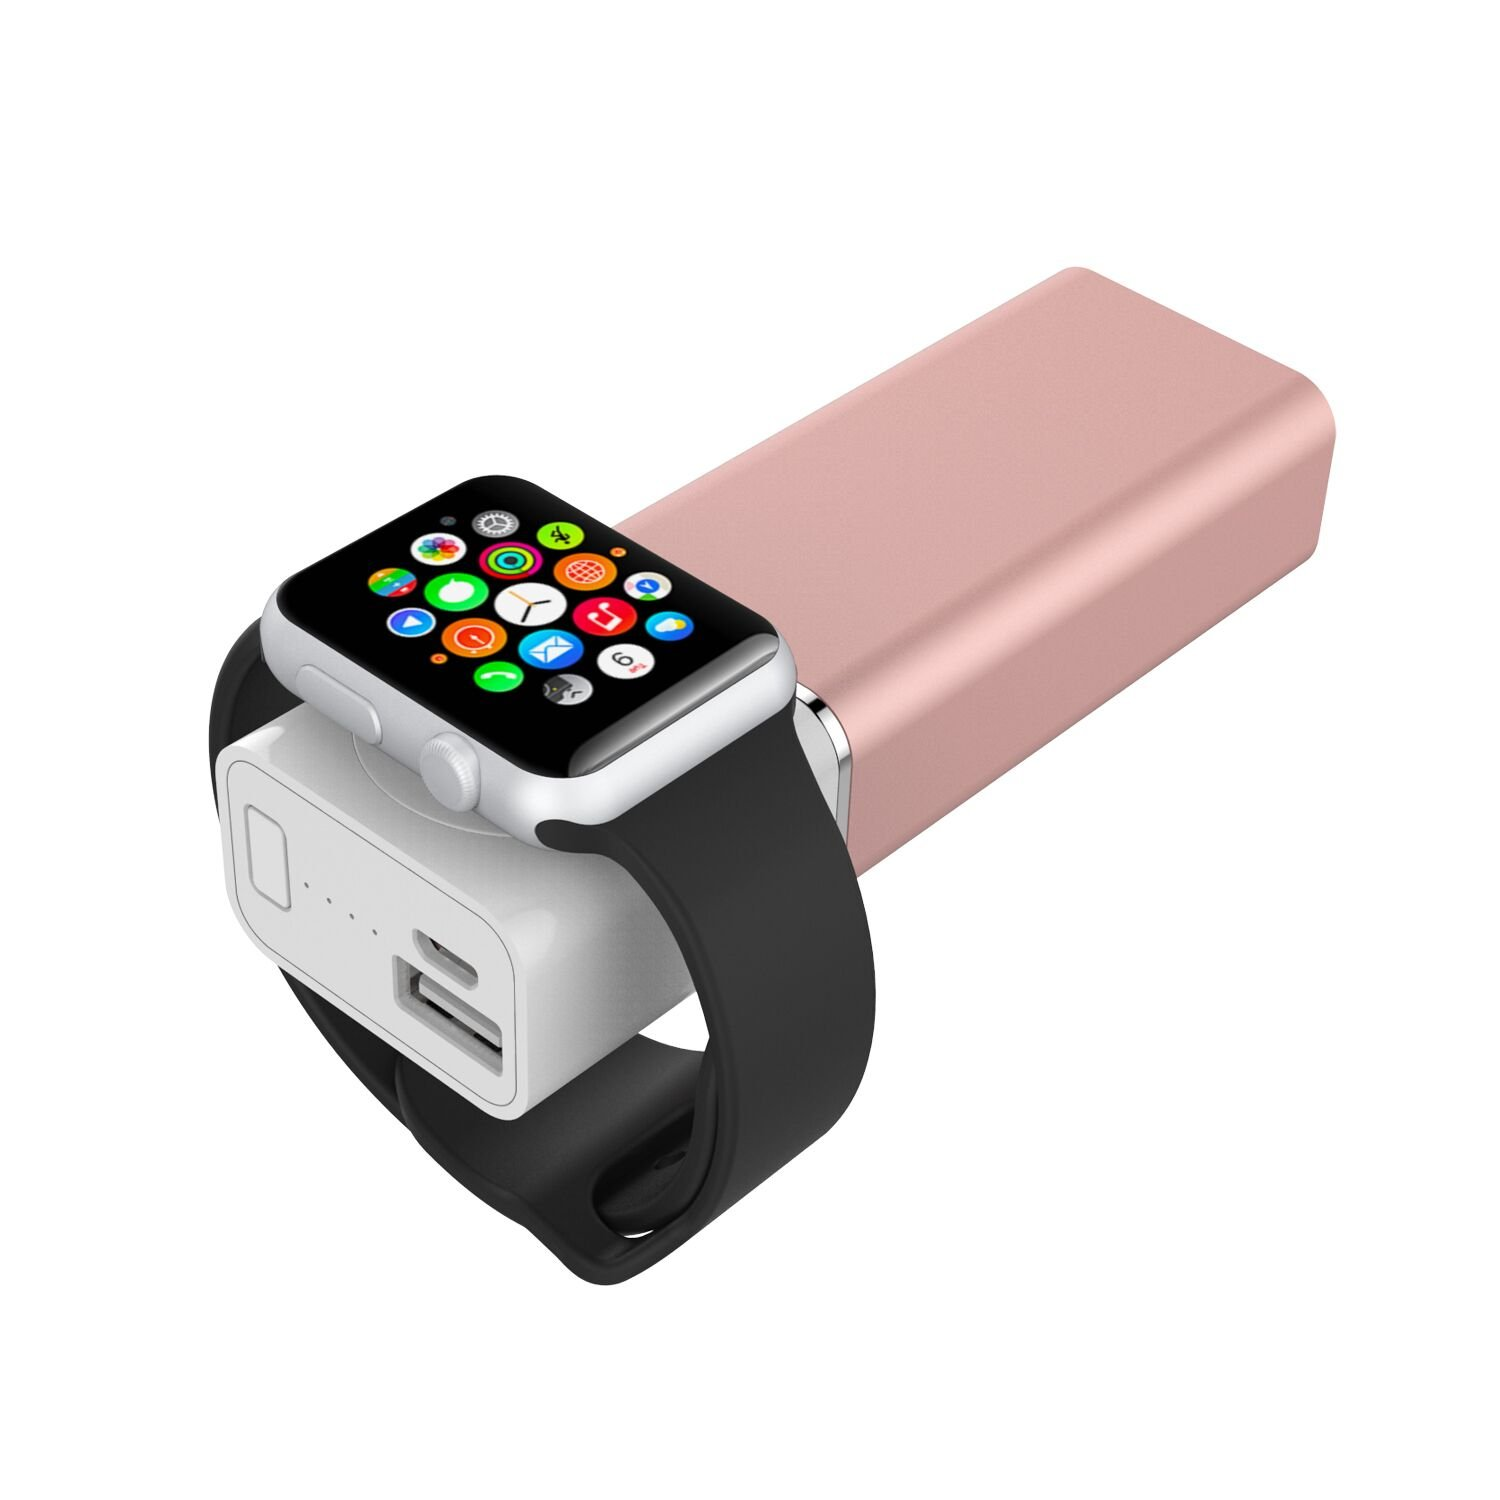 Element Works USA EW-AWPB2-RG Dual USB Portable Charger and External Battery Pack for Apple Watch in Rose Gold